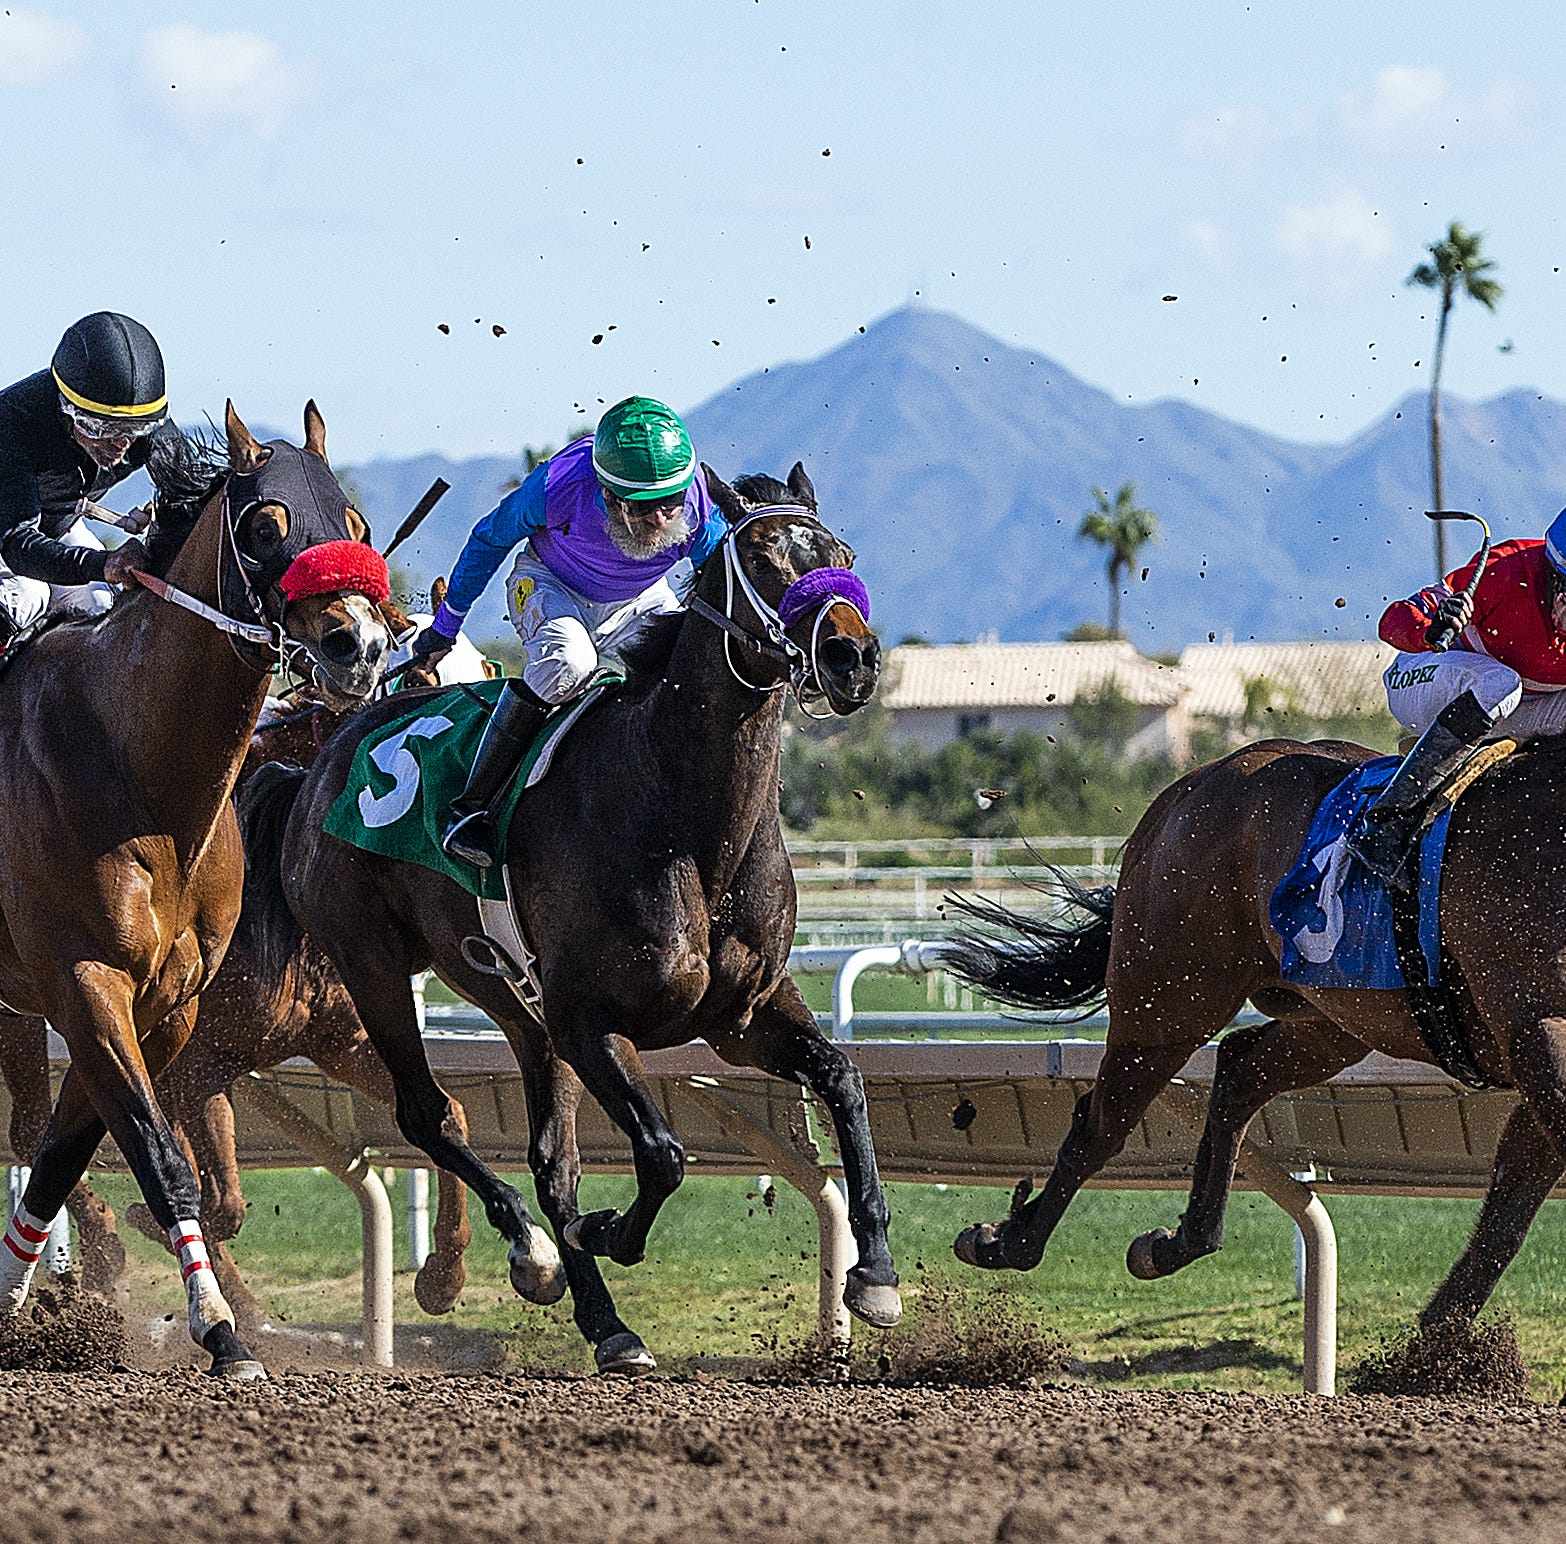 Turf Paradise is required to have an ambulance on hand. After a jockey was crushed by his horse he waited 30 minutes